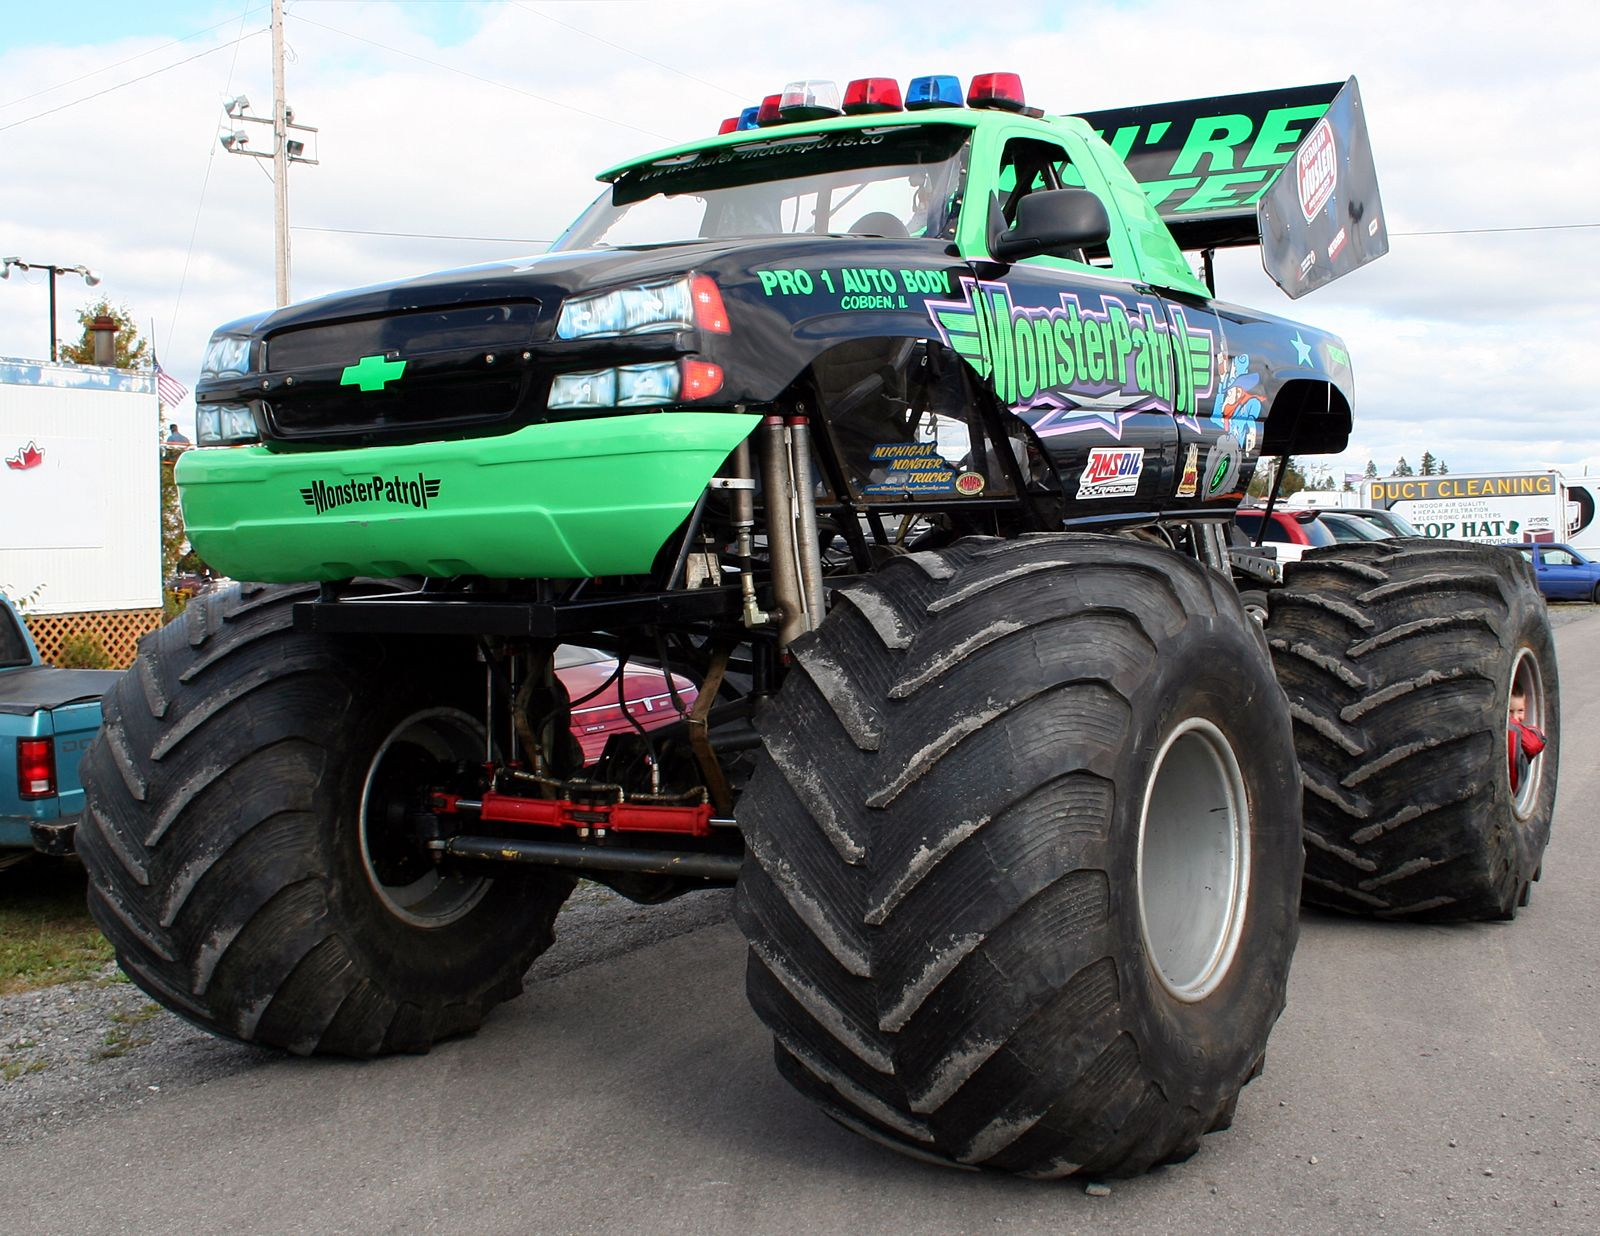 Monster Truck Some Amazing Wallpapers Images High Definition All Hd Wallpapers Monster Trucks Big Monster Trucks Trucks